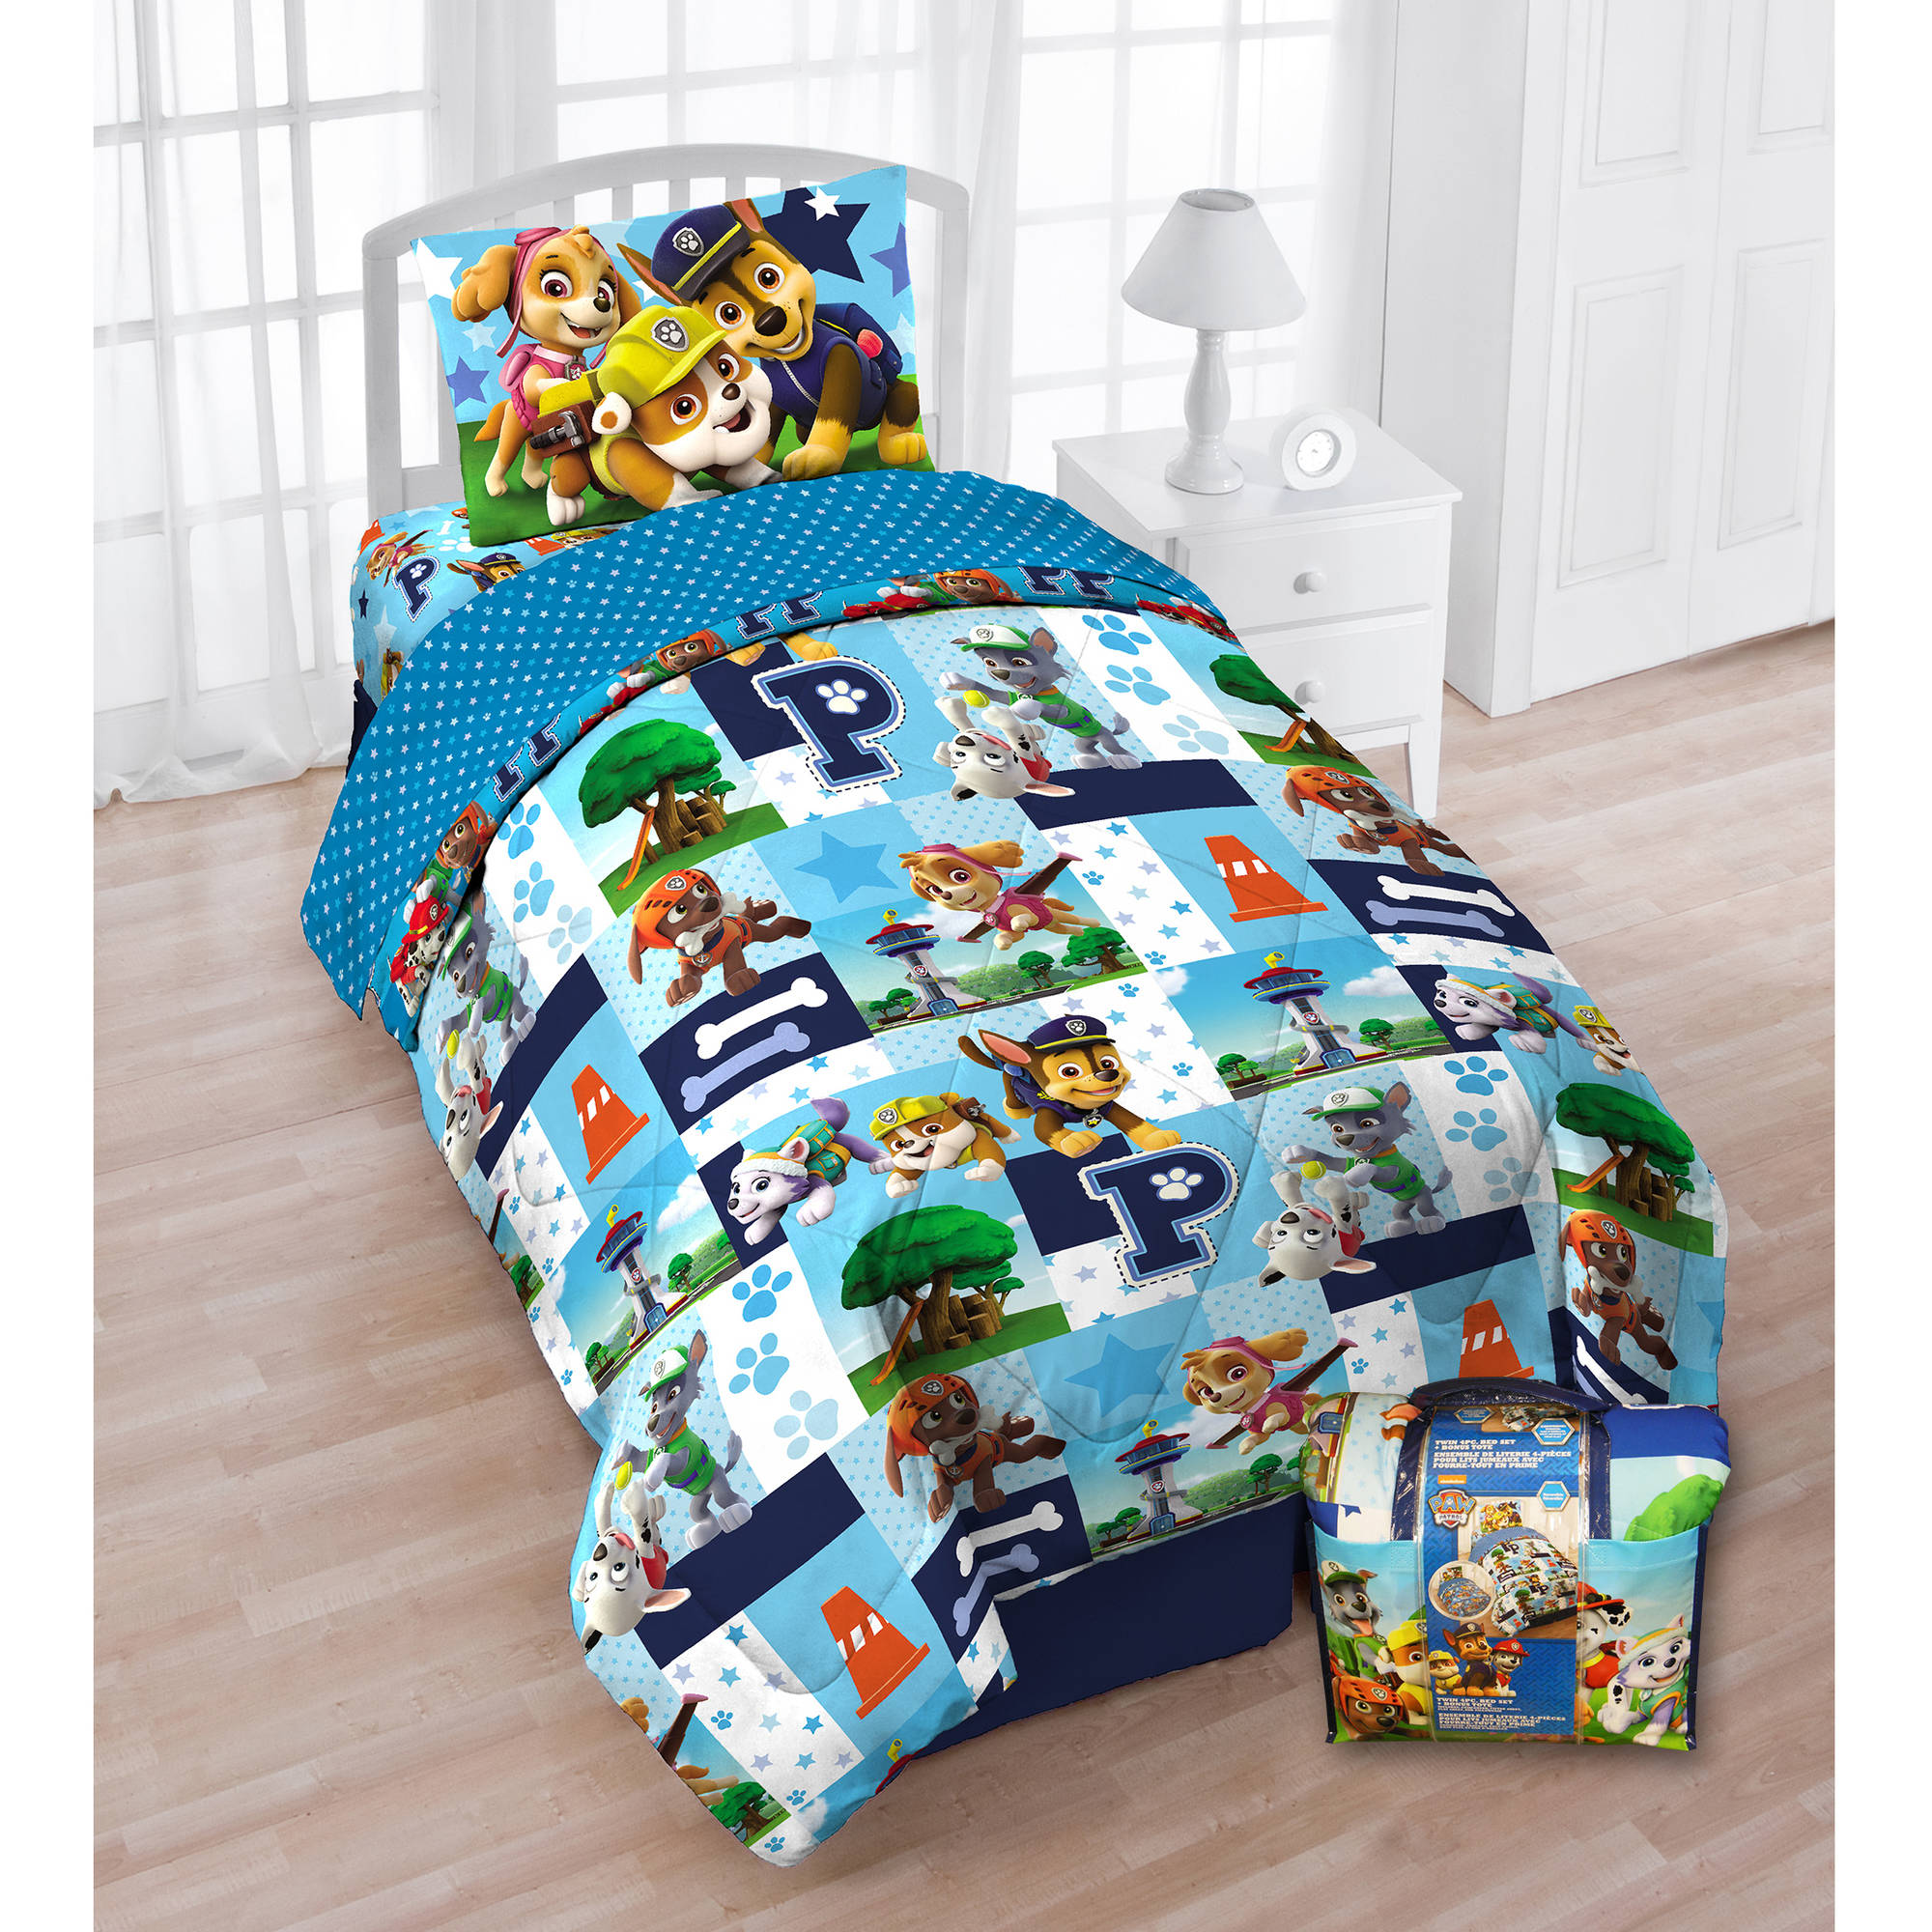 Kids Bedding Walmartcom